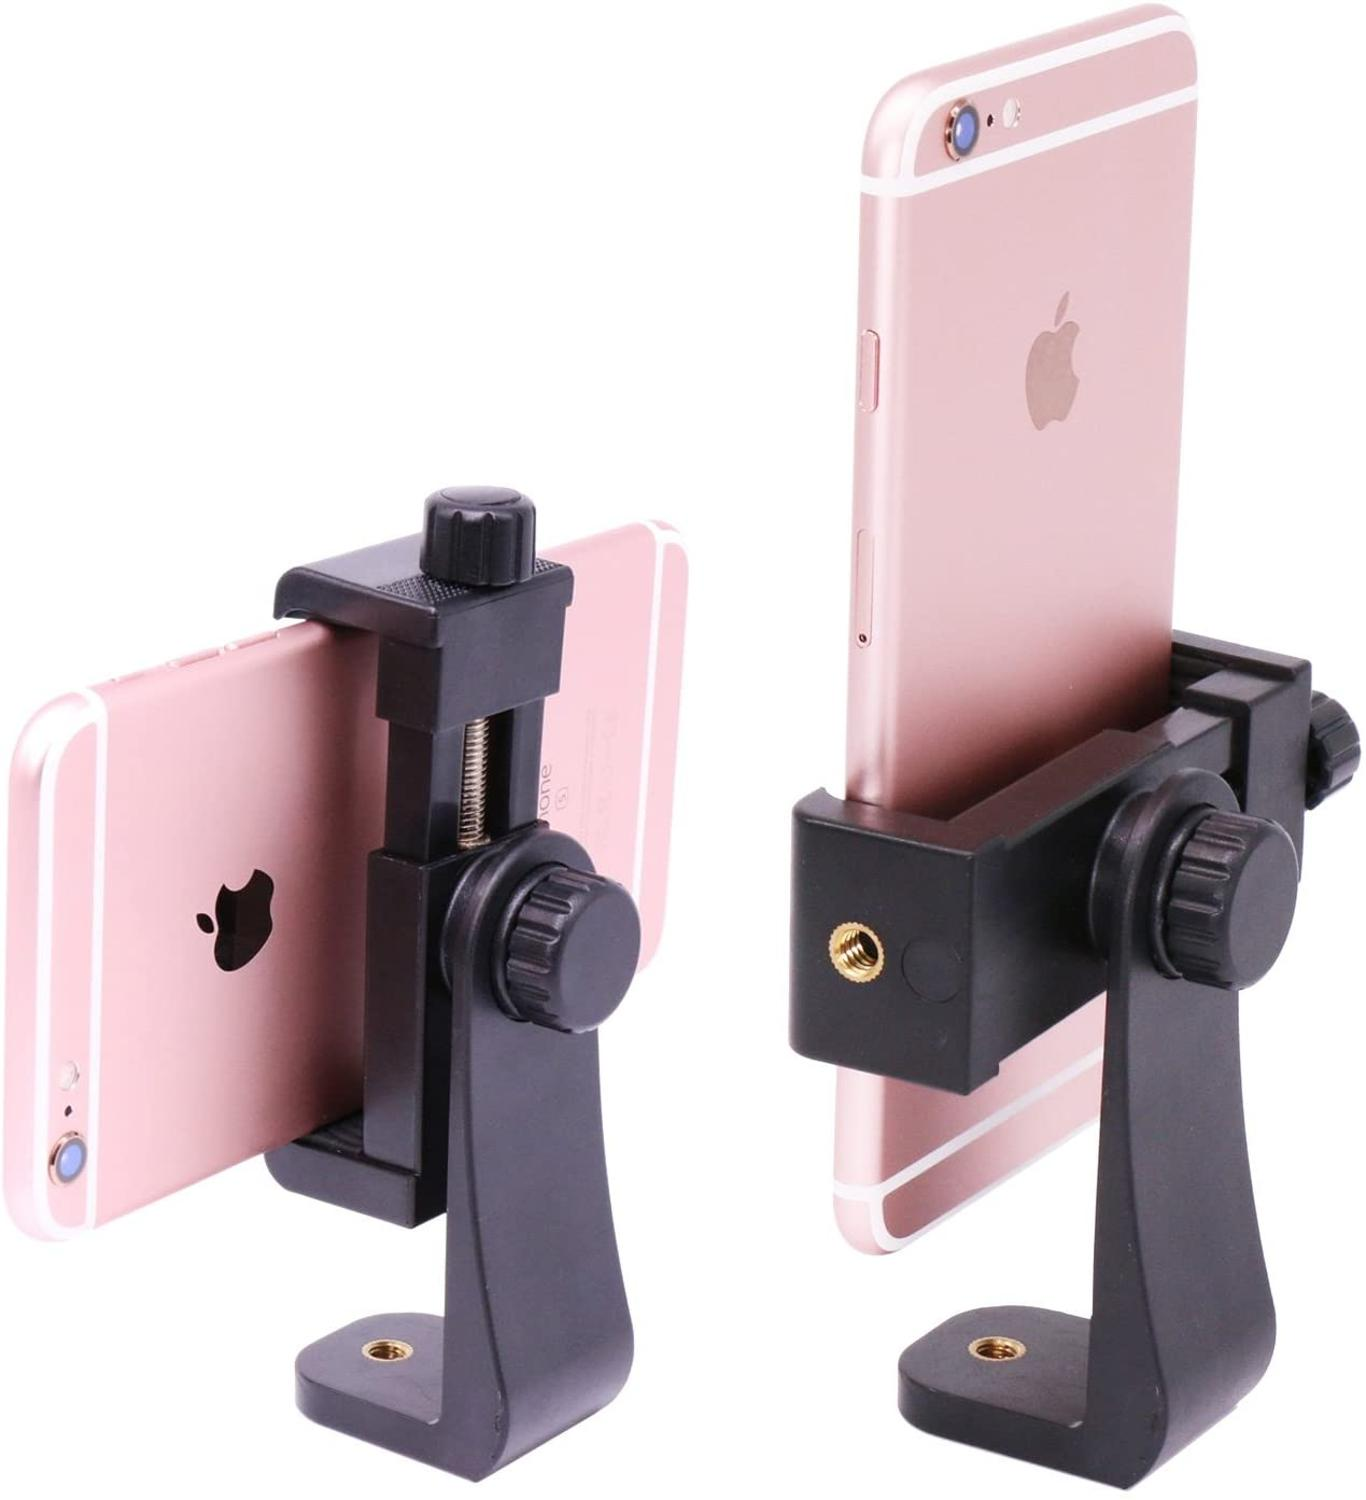 Universal Phone Tripod Mount Adapter Cell Phone Clipper Vertical Bracket for iPhone 11 Pro Max XR Xs 8 Plus Samsung Pixel